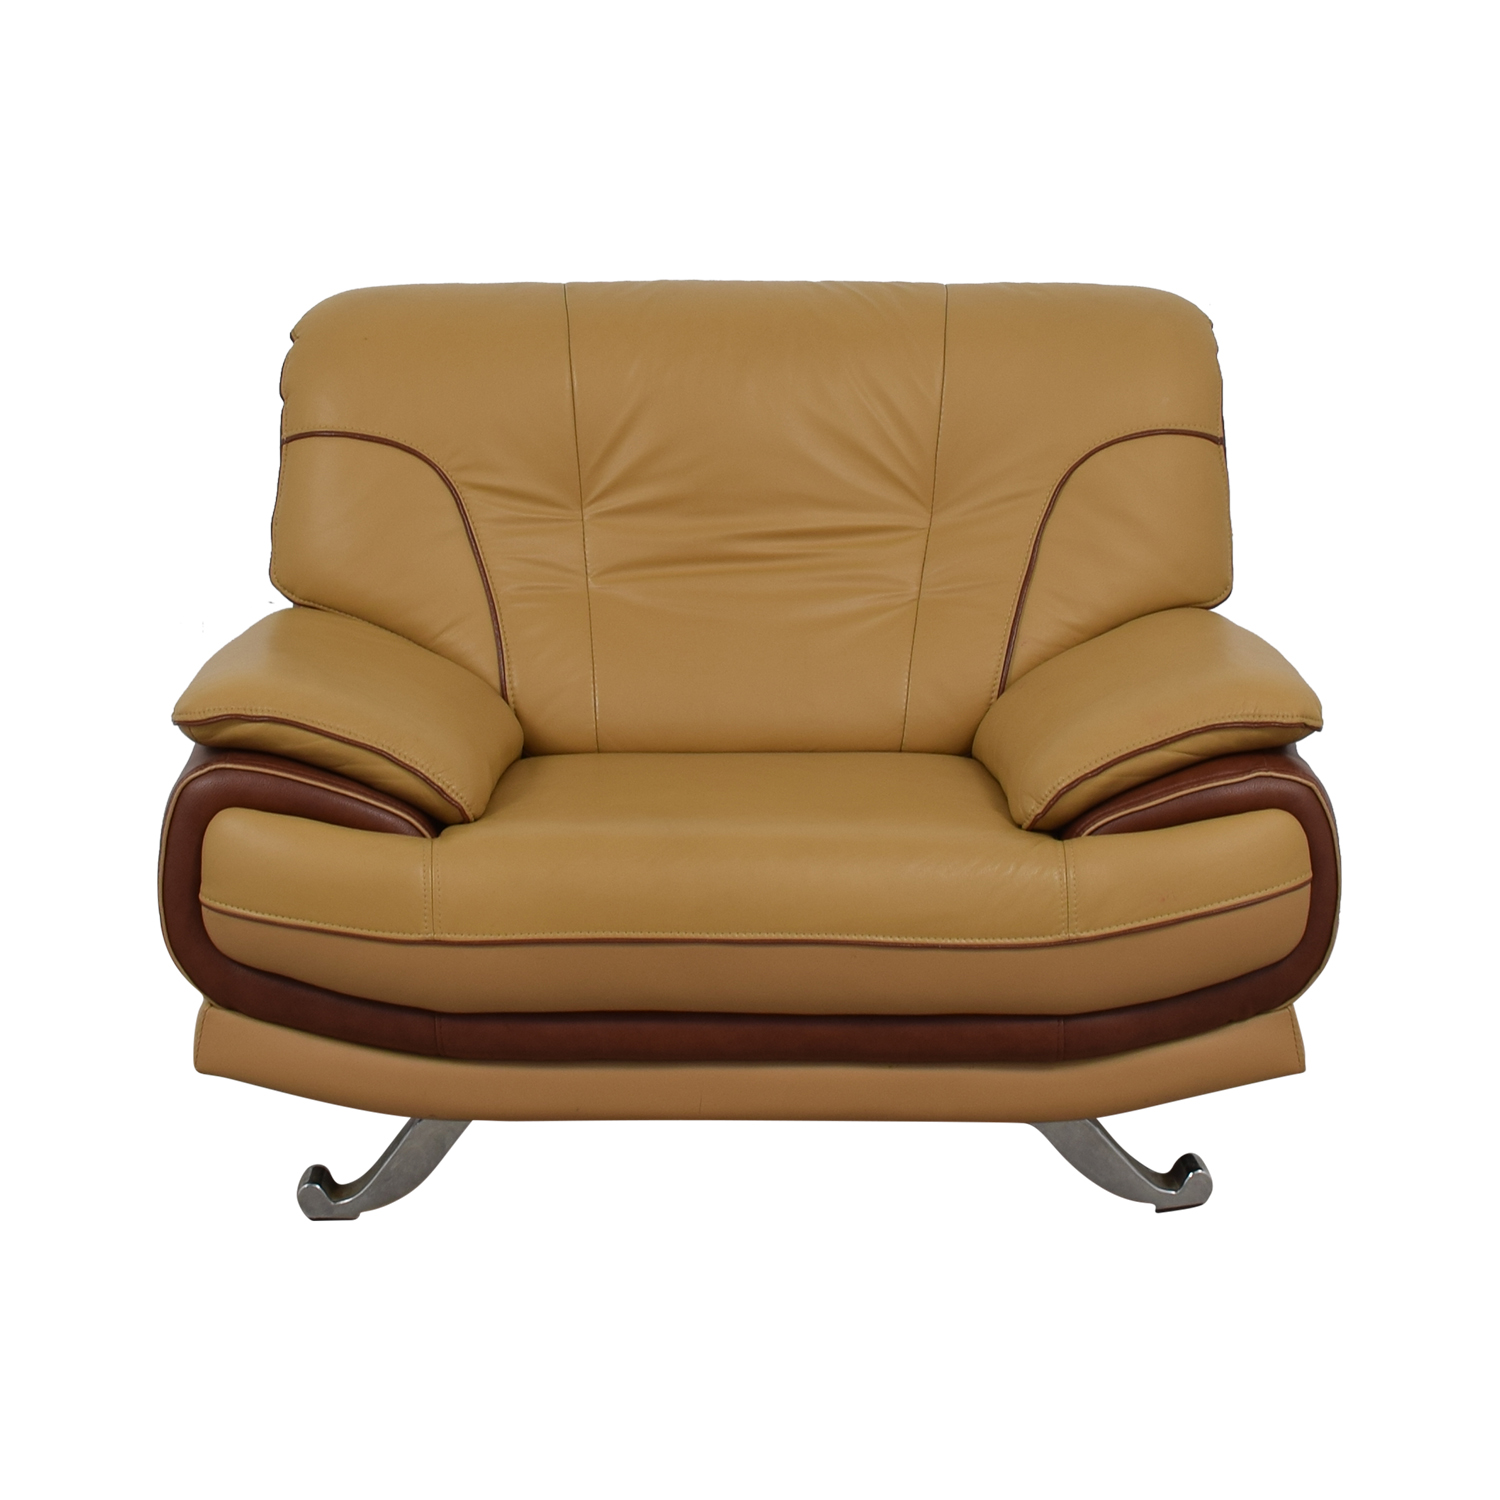 AE Furniture AE Furniture Brown and Tan Accent Chair price